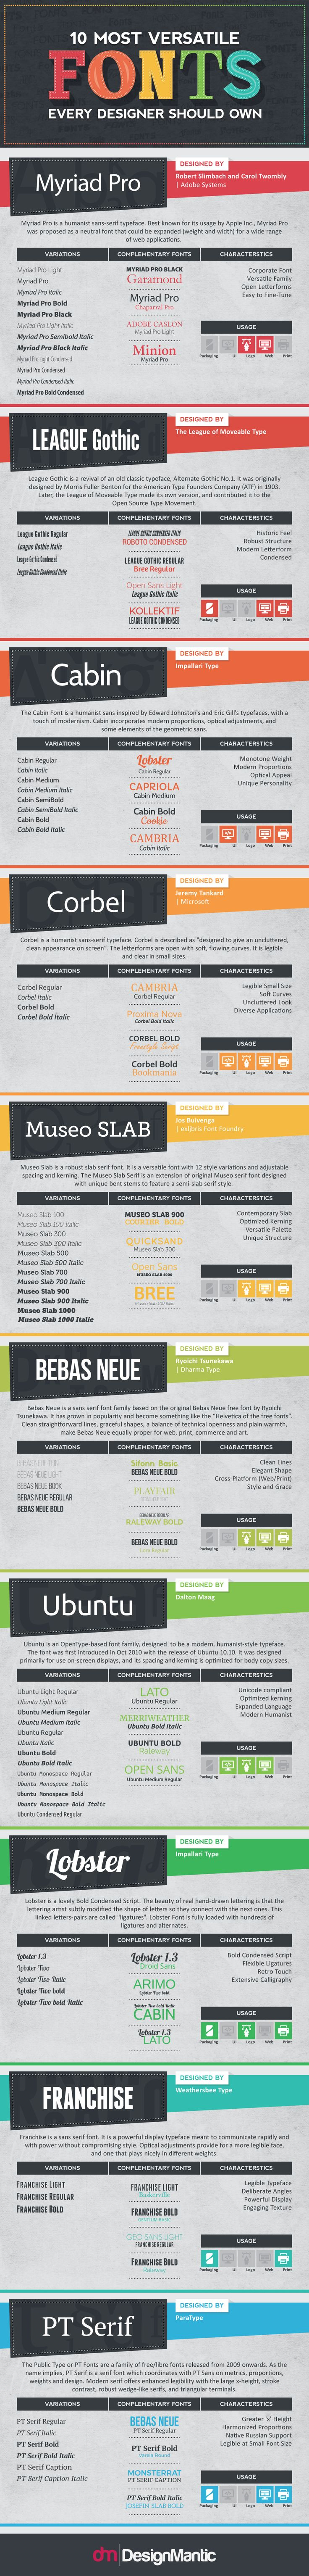 10 Most Versatile Fonts Every Designer Should Own - #infographic